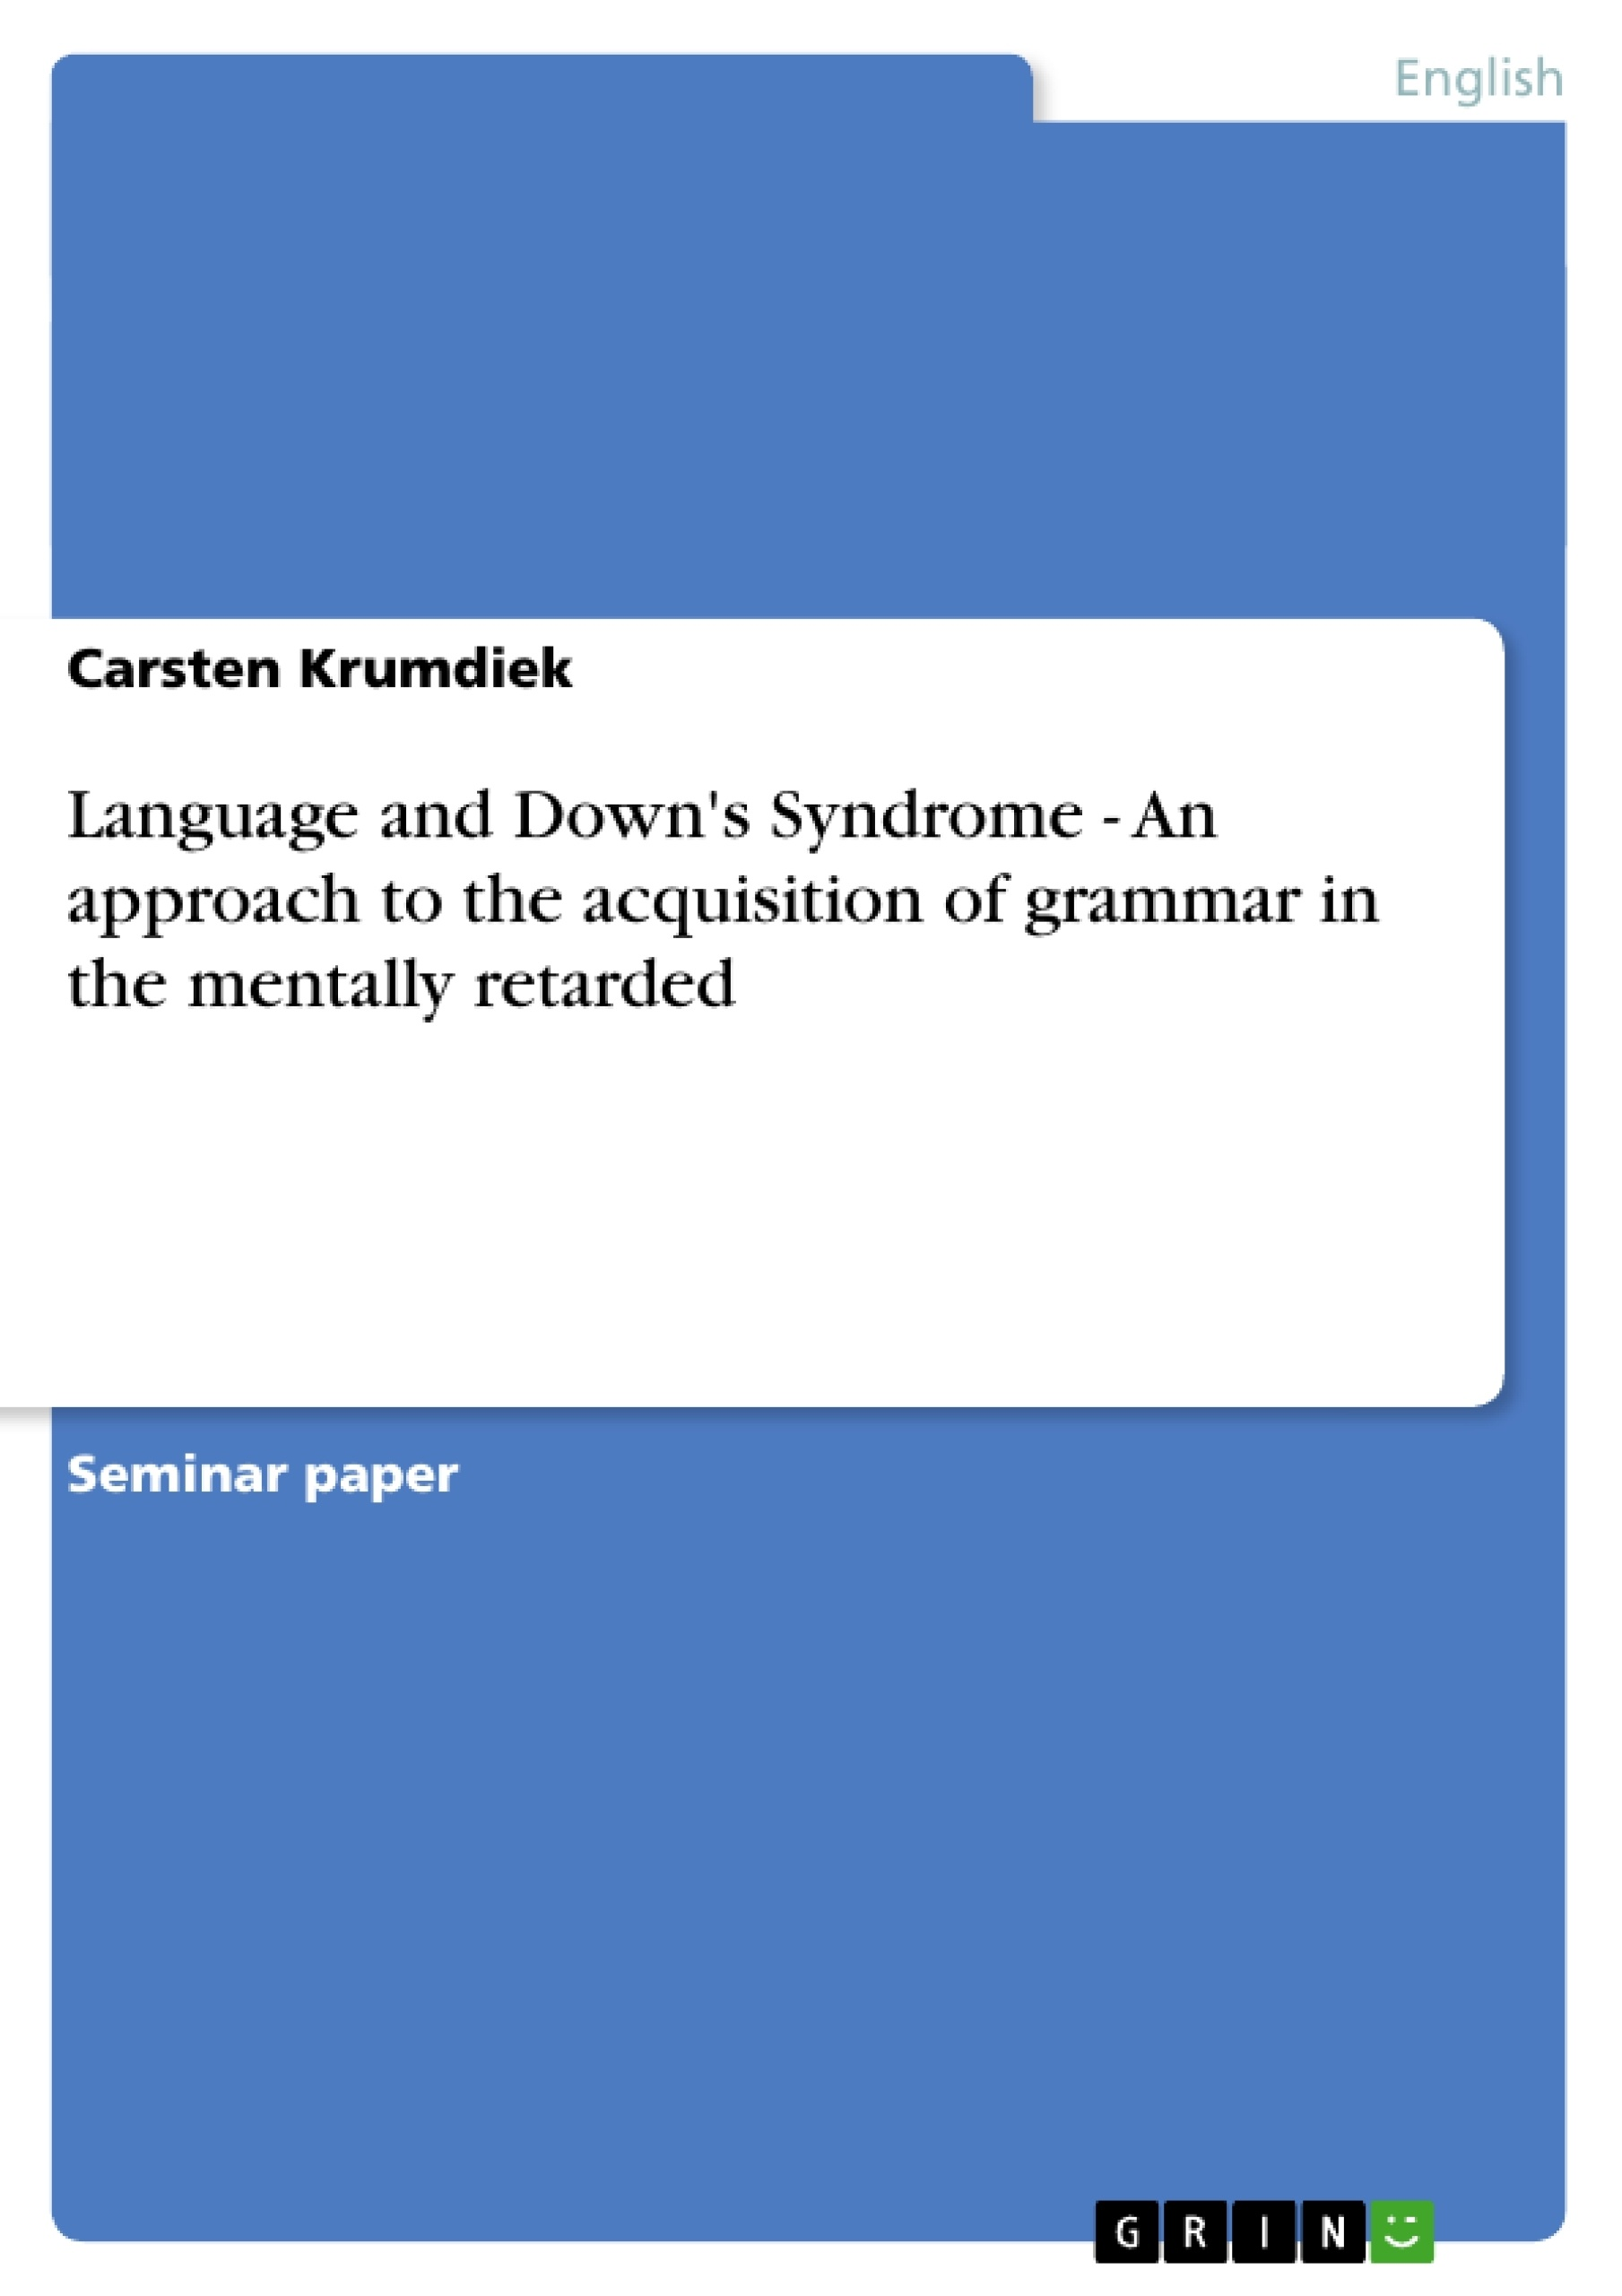 Title: Language and Down's Syndrome - An approach to the acquisition of grammar in the mentally retarded